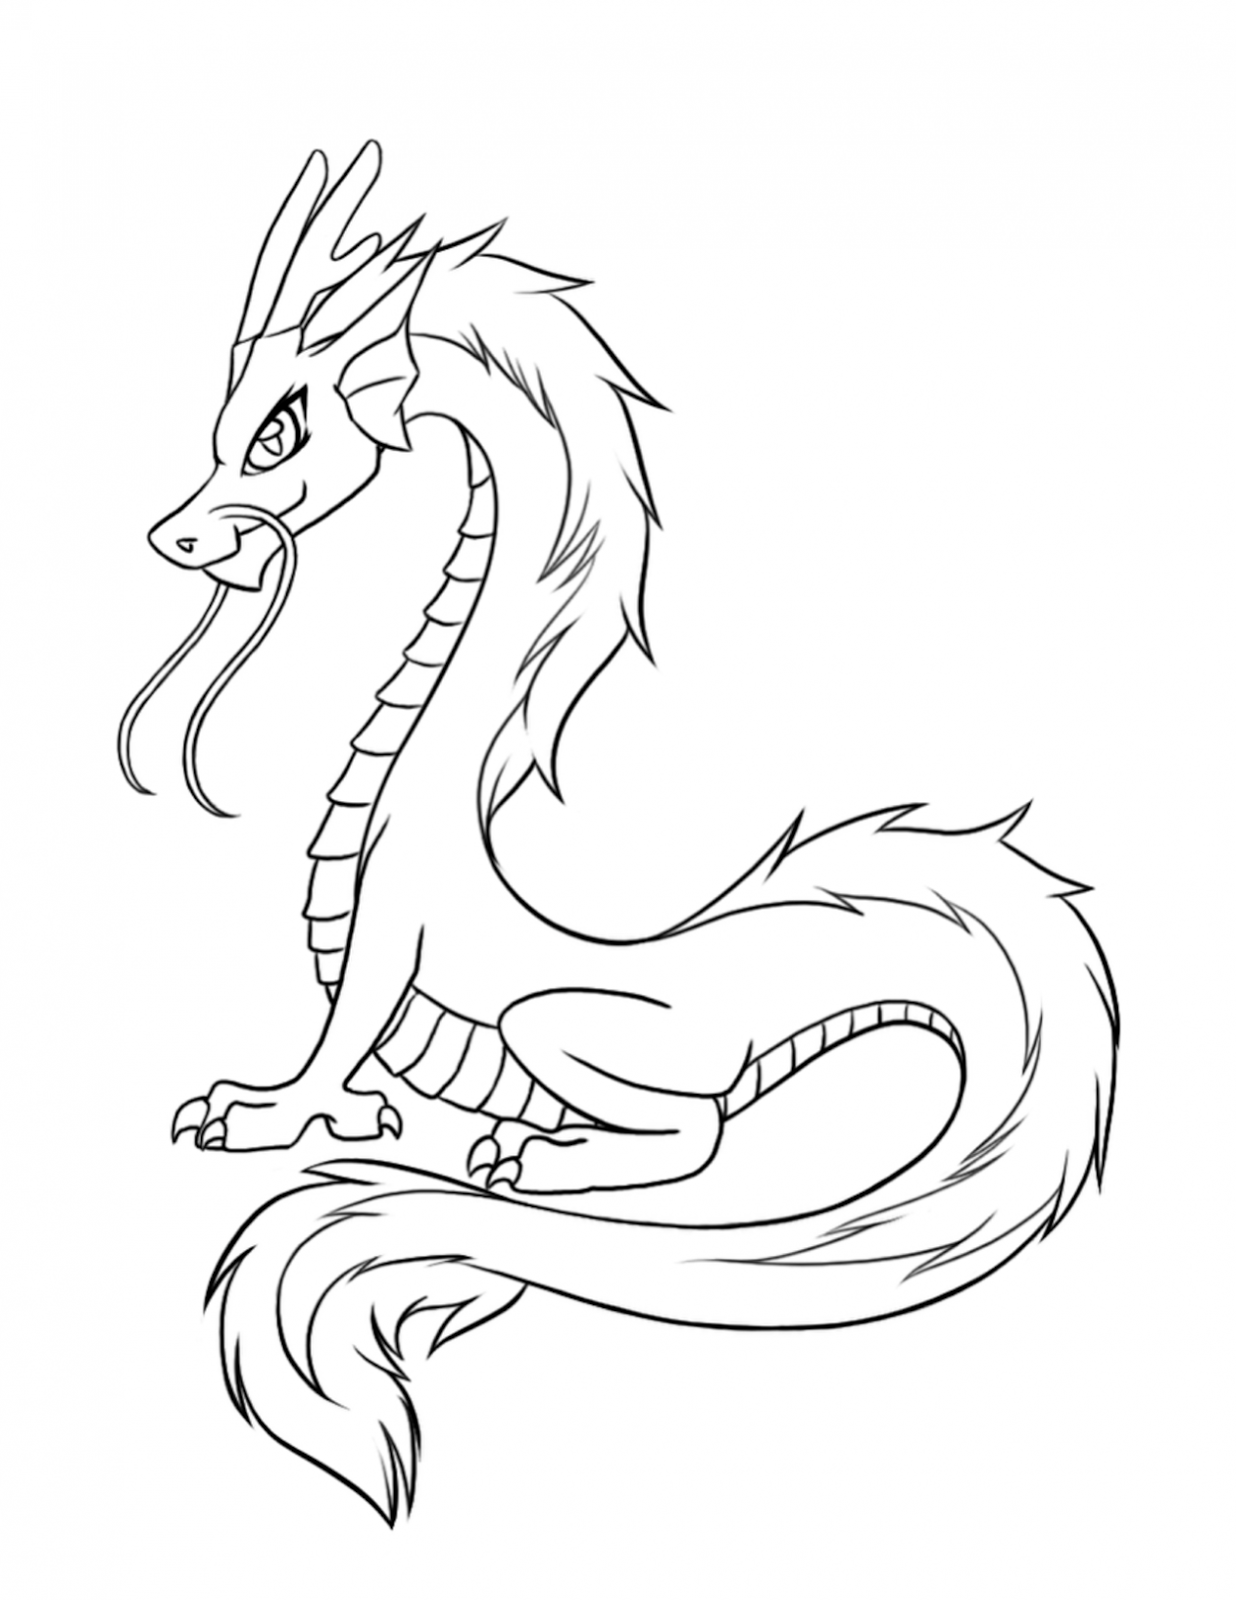 Dragon Coloring Pages - Free Printable Pictures Coloring ...